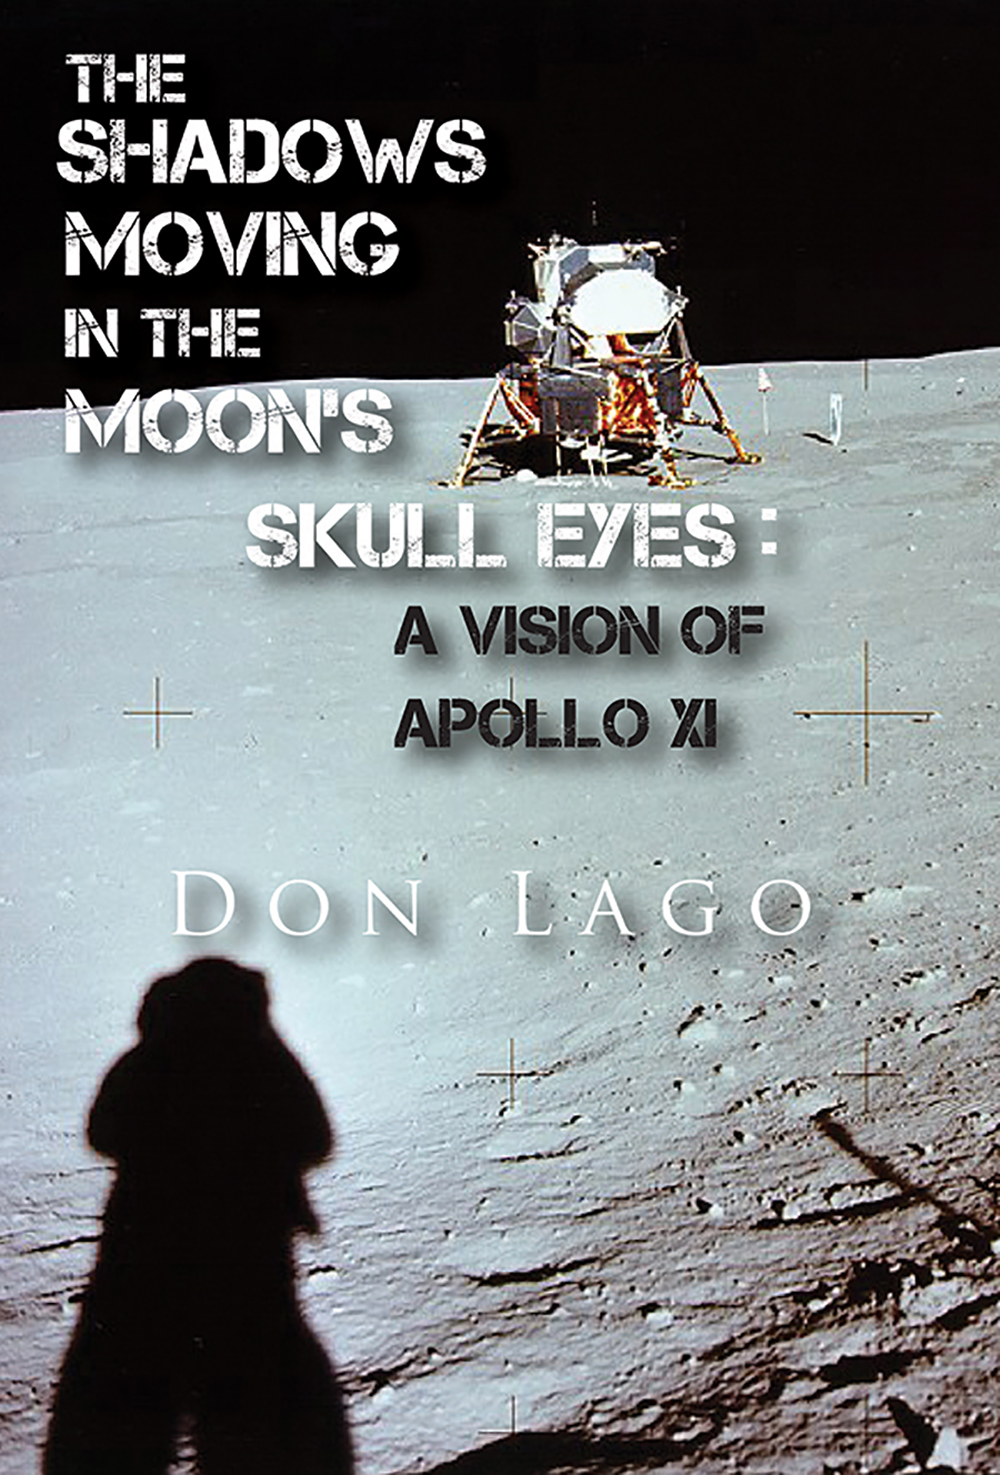 The Shadows Moving in the Moon's Skull Eyes: An Appreciation of Apollo XI